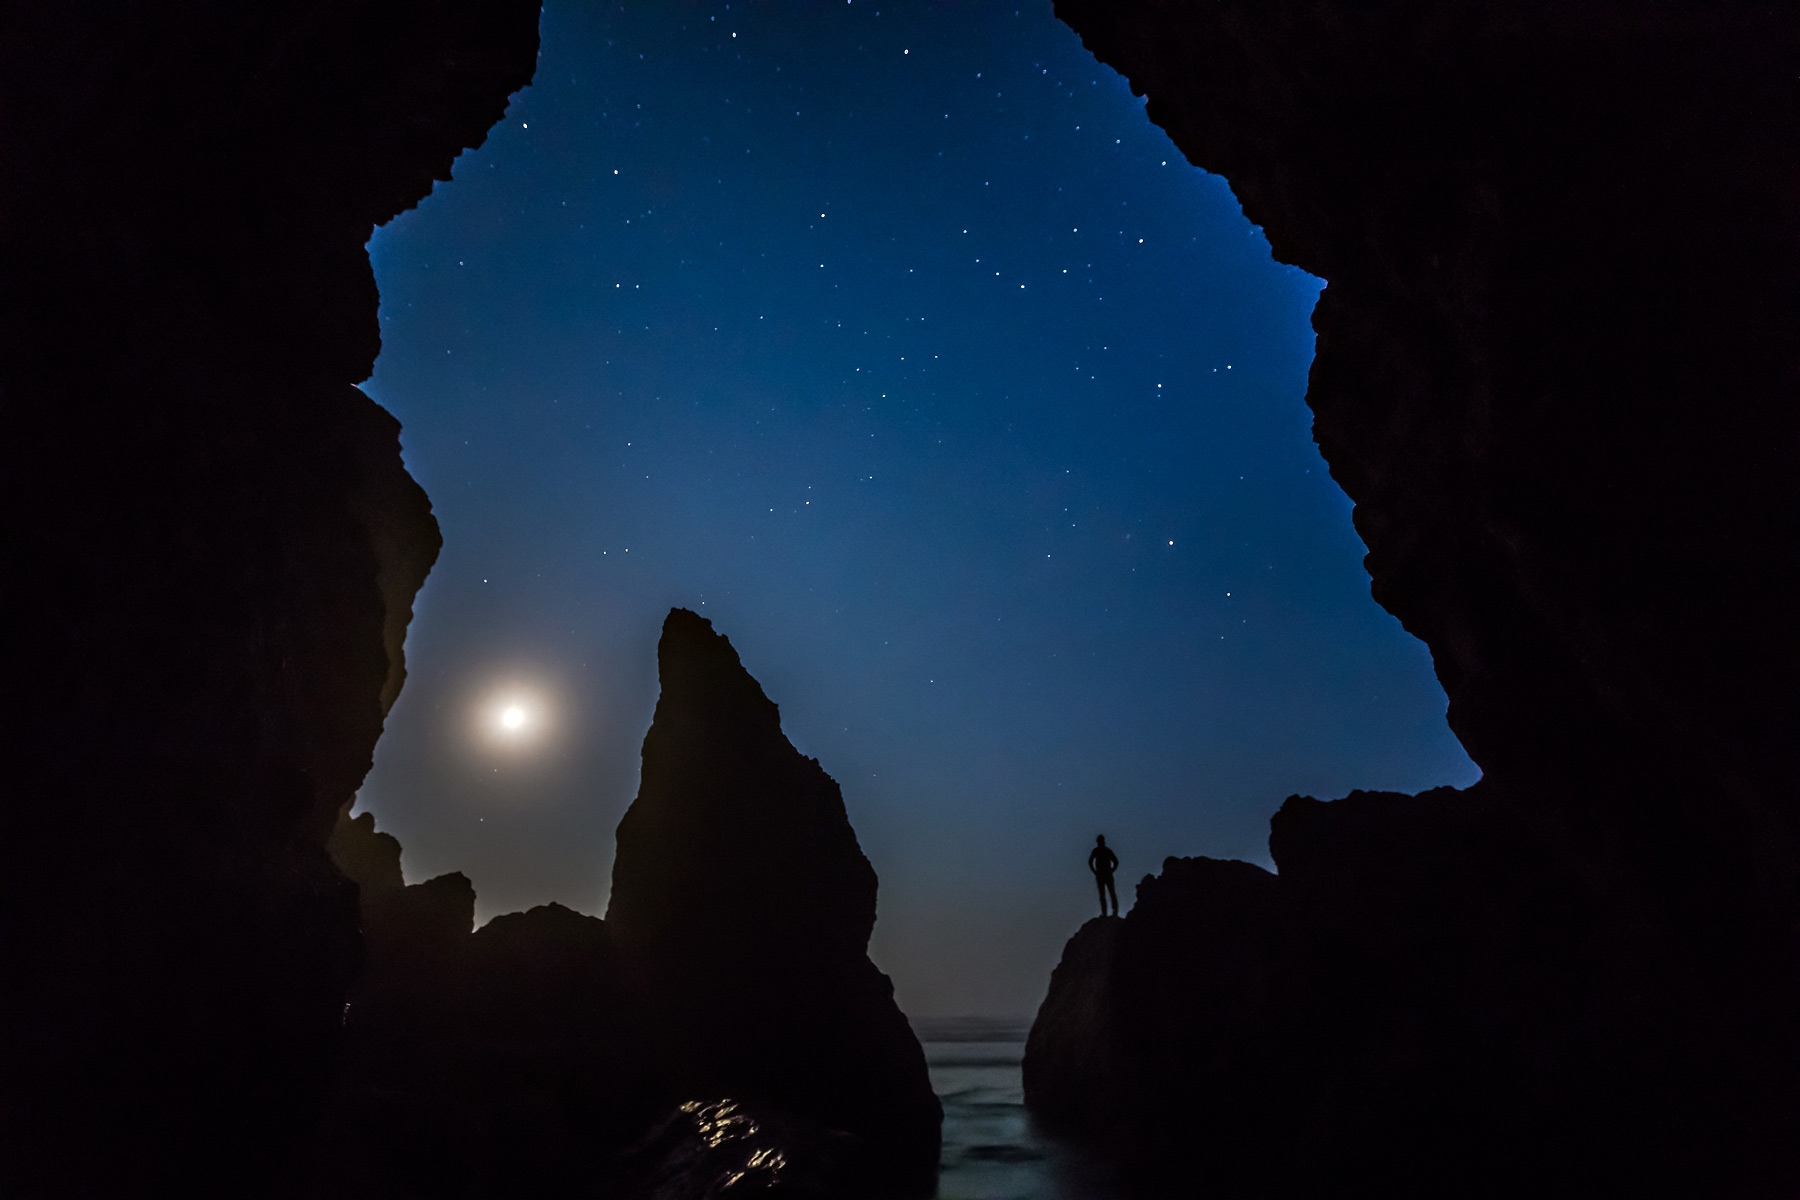 Ruby Beach man silhouetted against a night sky.